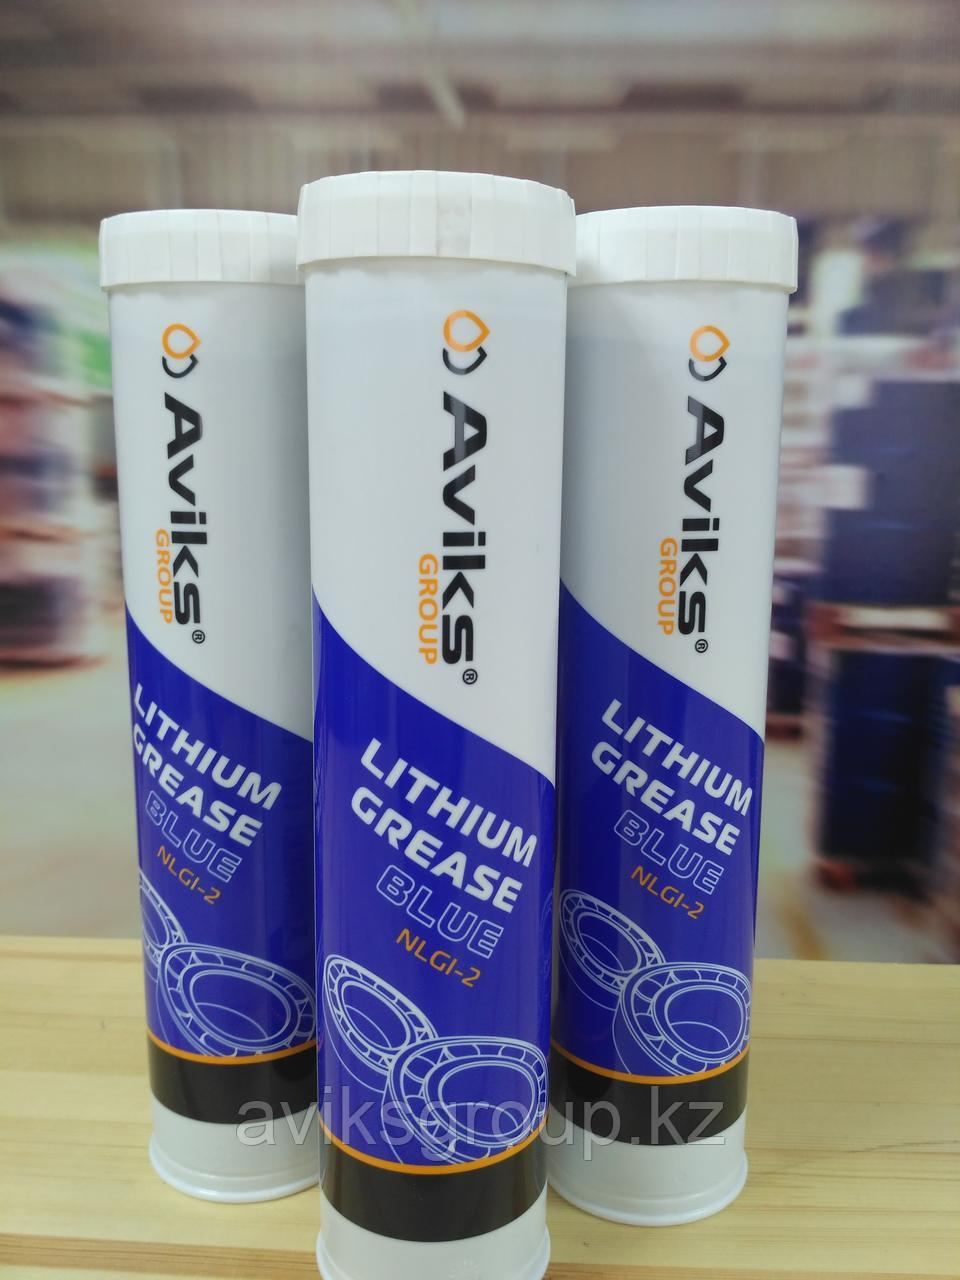 AVIKS Lithium Grease BLUE , картуш 380гр